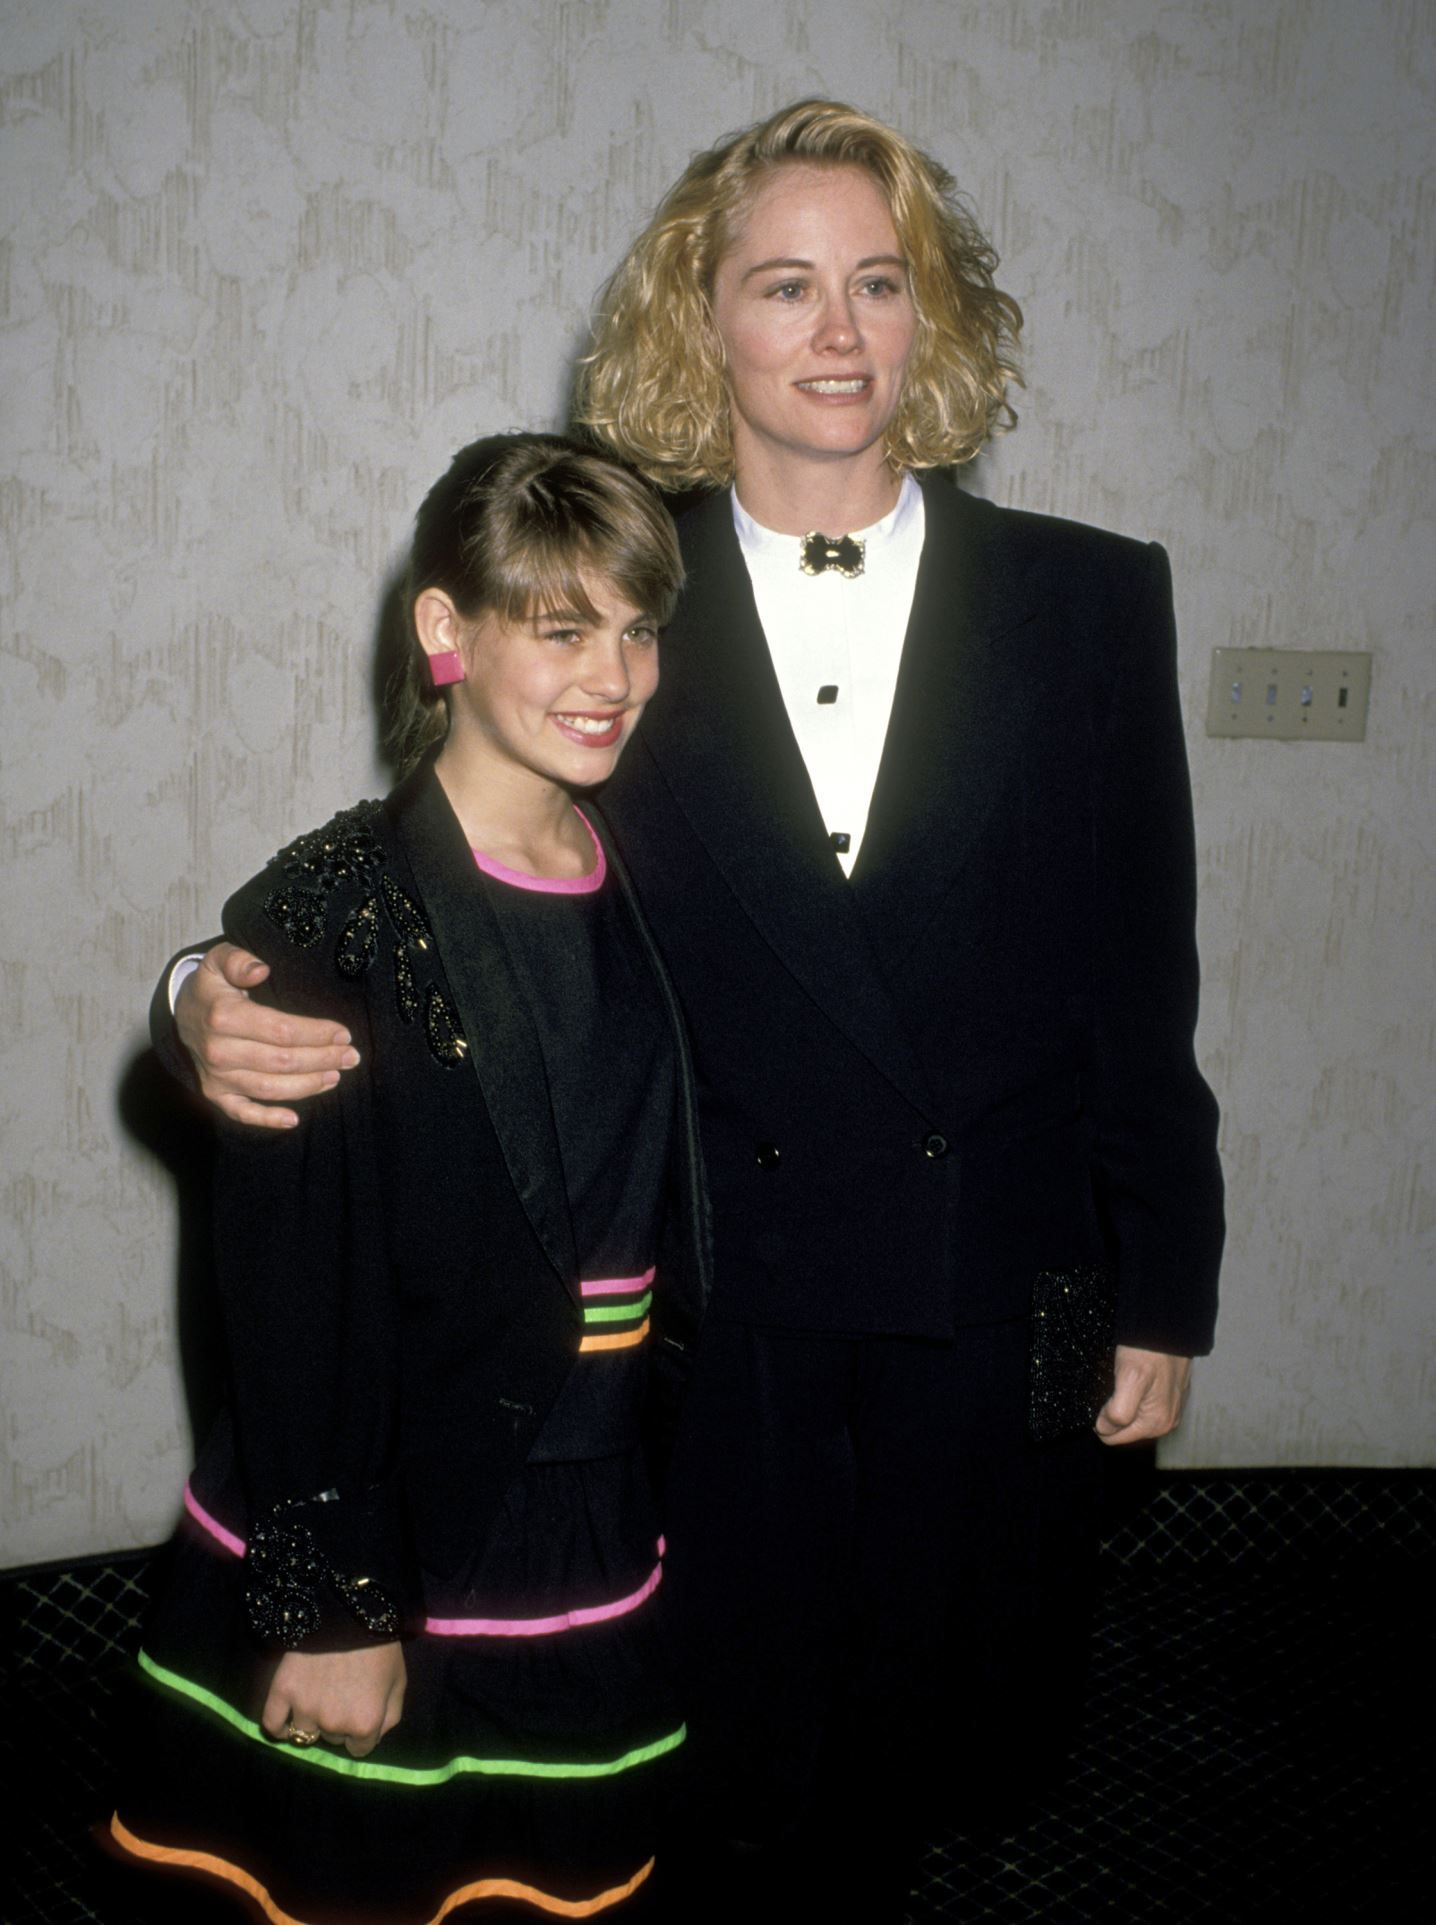 Clementine Ford With Her Momm Cybill Shepherd During